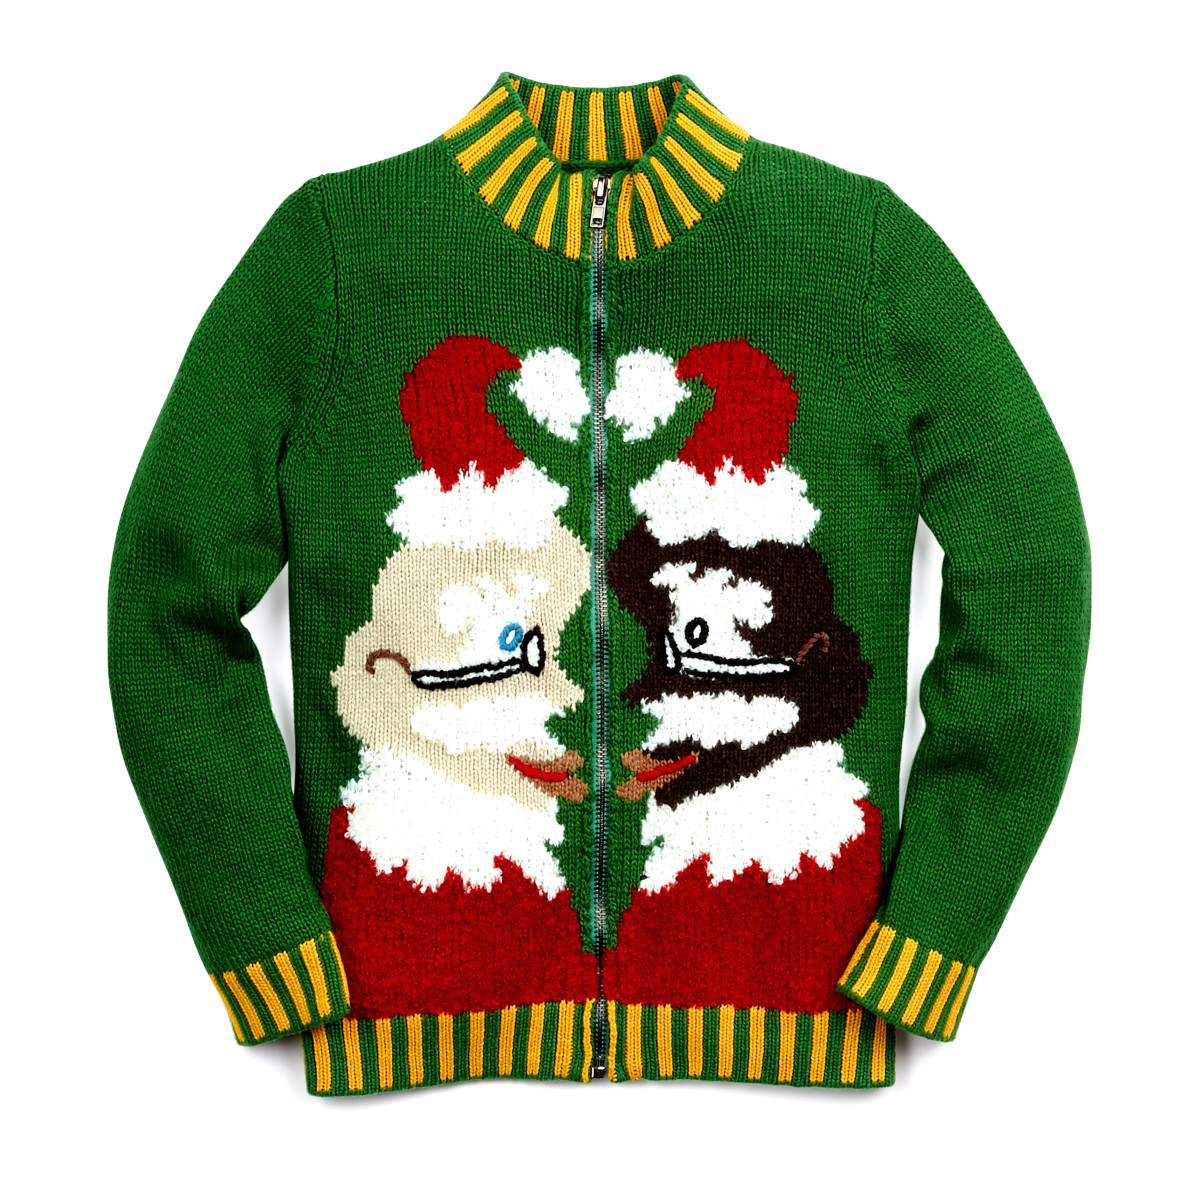 Whoopi Goldberg Christmas Sweaters.Whoopi Goldberg Designed Ugly Holiday Sweaters For You To